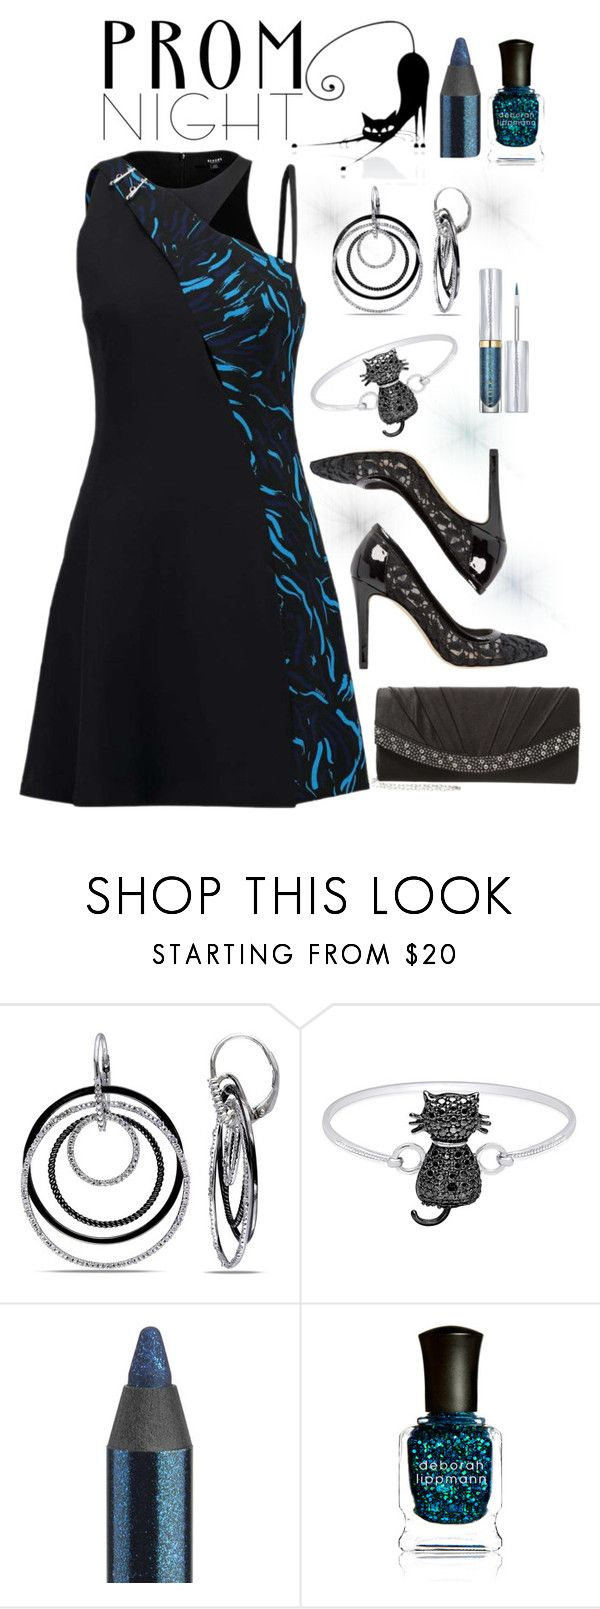 """The perfect prom night"" by amisha73 ❤ liked on Polyvore featuring Ice, Finesque, Anna Field, Urban Decay, Deborah Lippmann and PROMNIGHT"